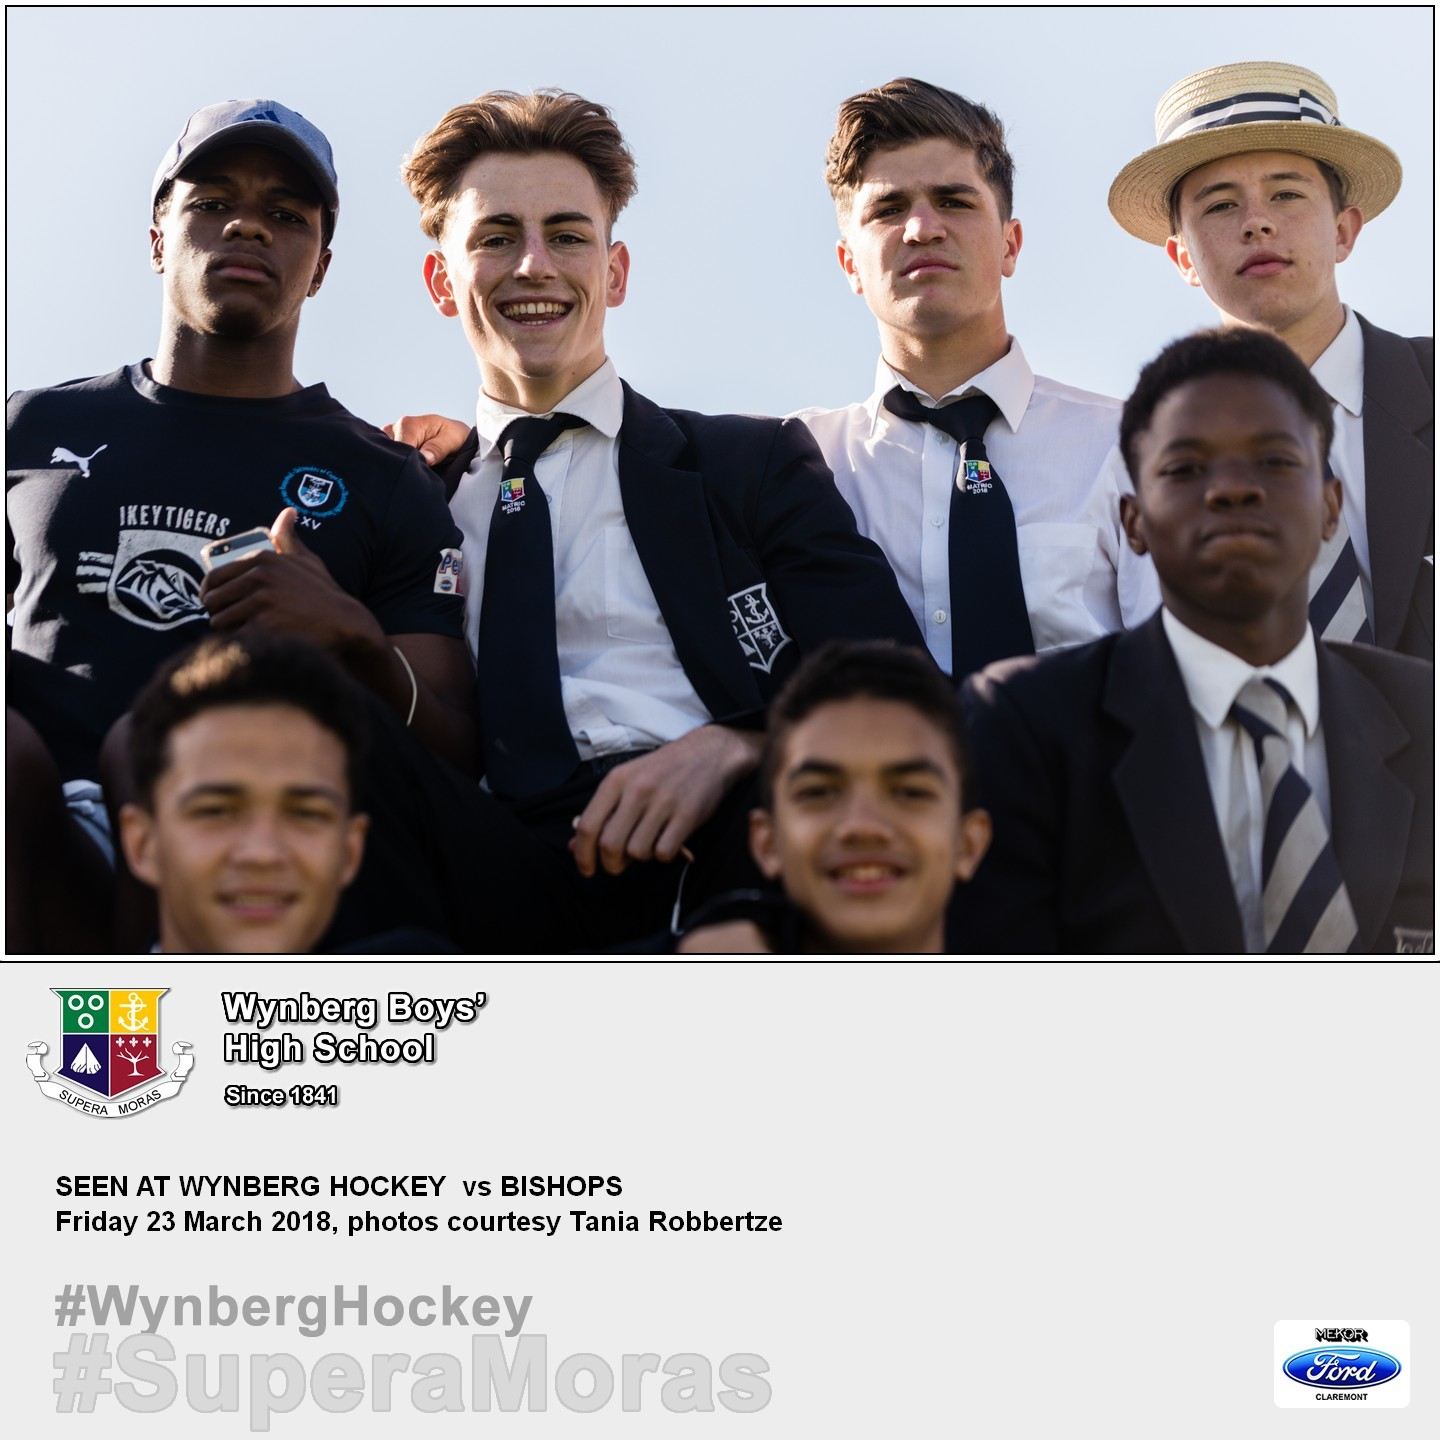 Hockey Supporters, Friday 23 March 2018